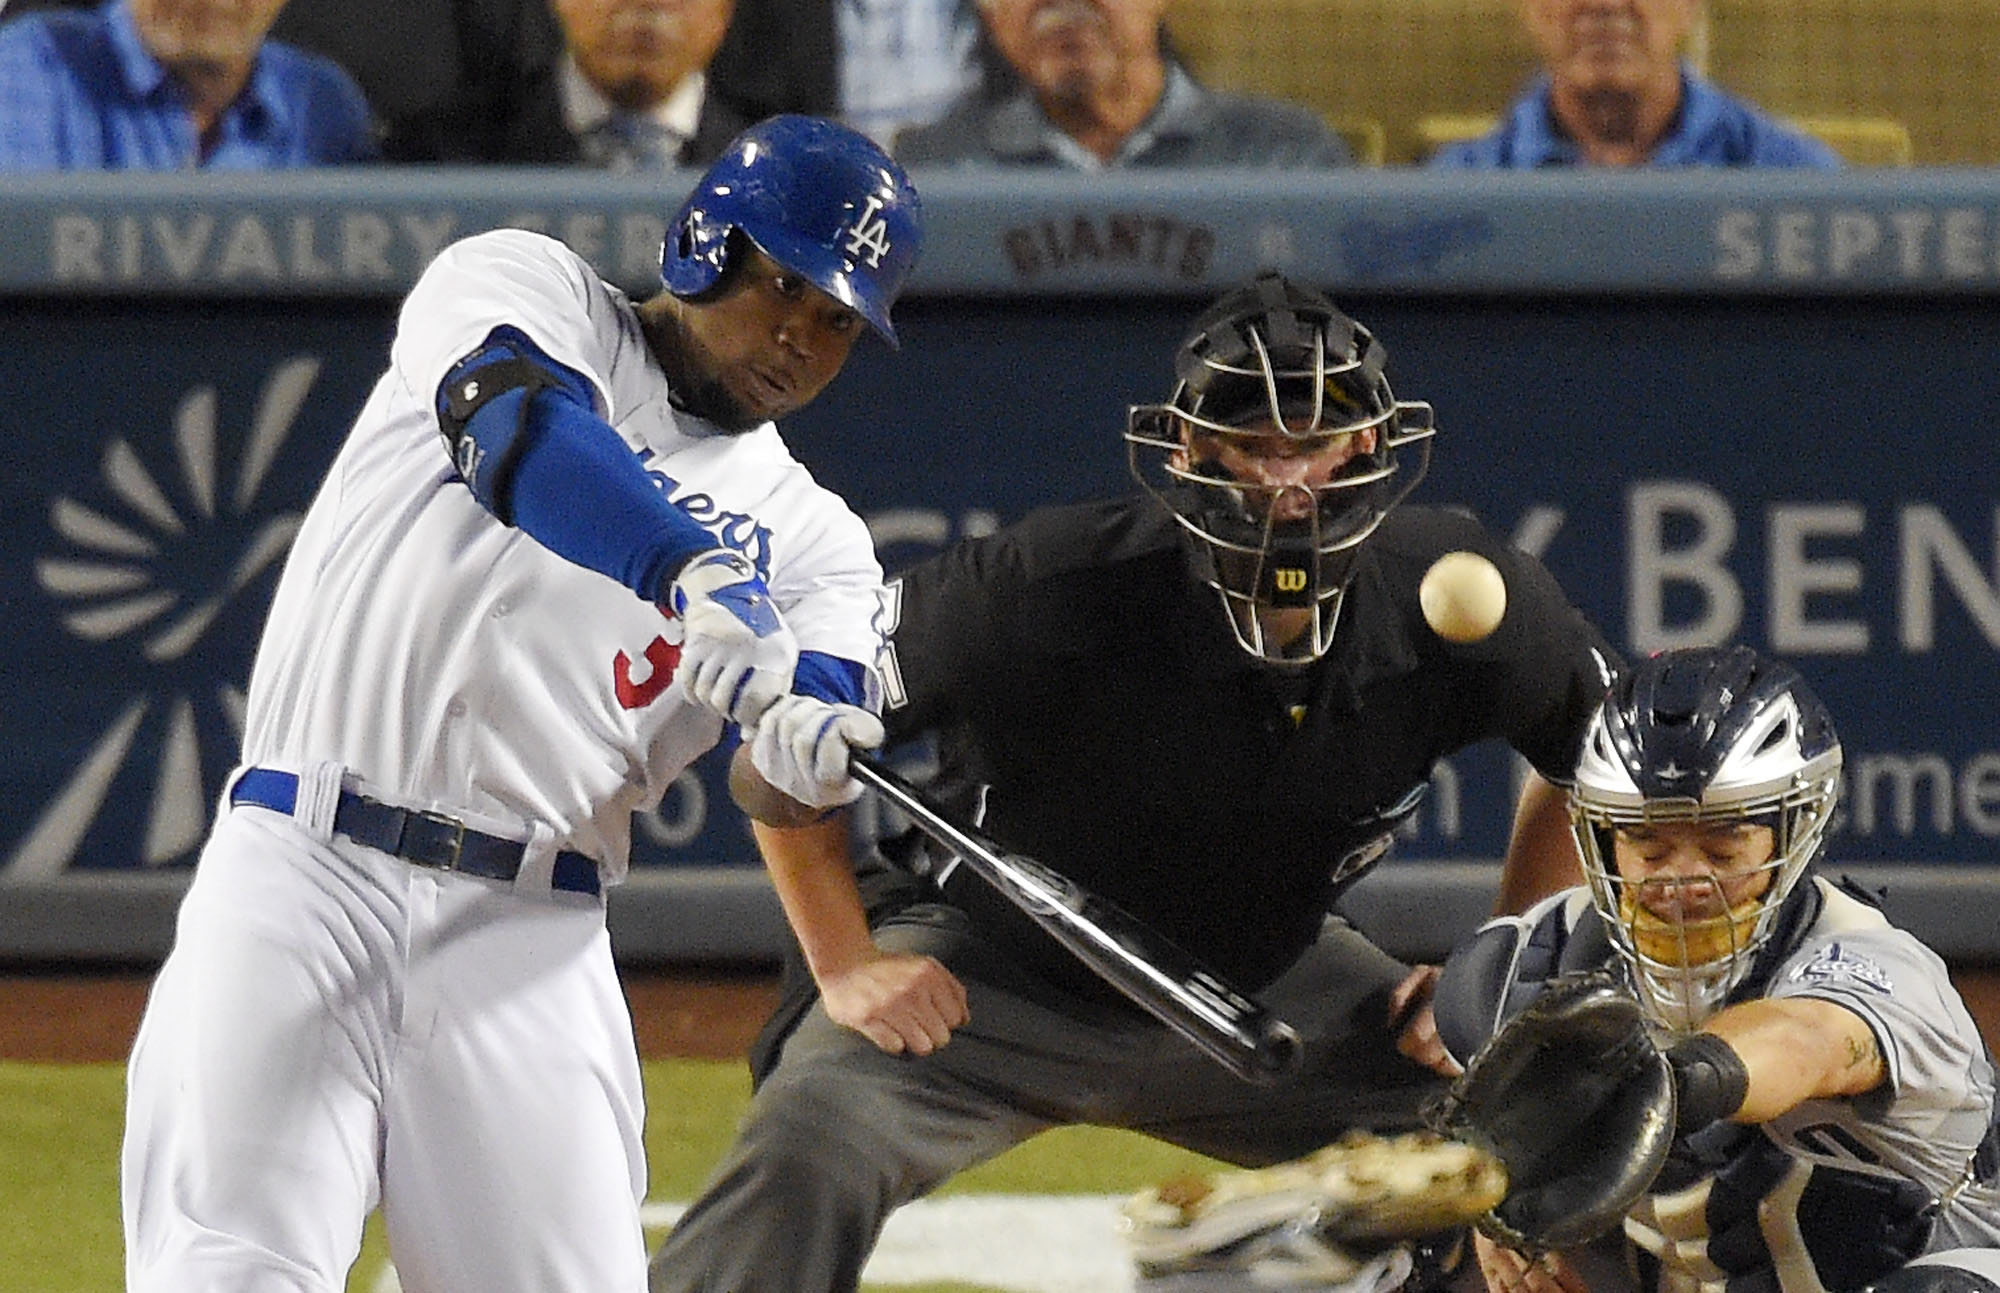 FILE - In this Wednesday, Sept. 10, 2014 file photo, Los Angeles Dodgers' Carl Crawford, left, hits an RBI double as San Diego Padres catcher Rene Rivera, right, looks on along with home plate umpire Tom Woodring during the third inning of a baseball game